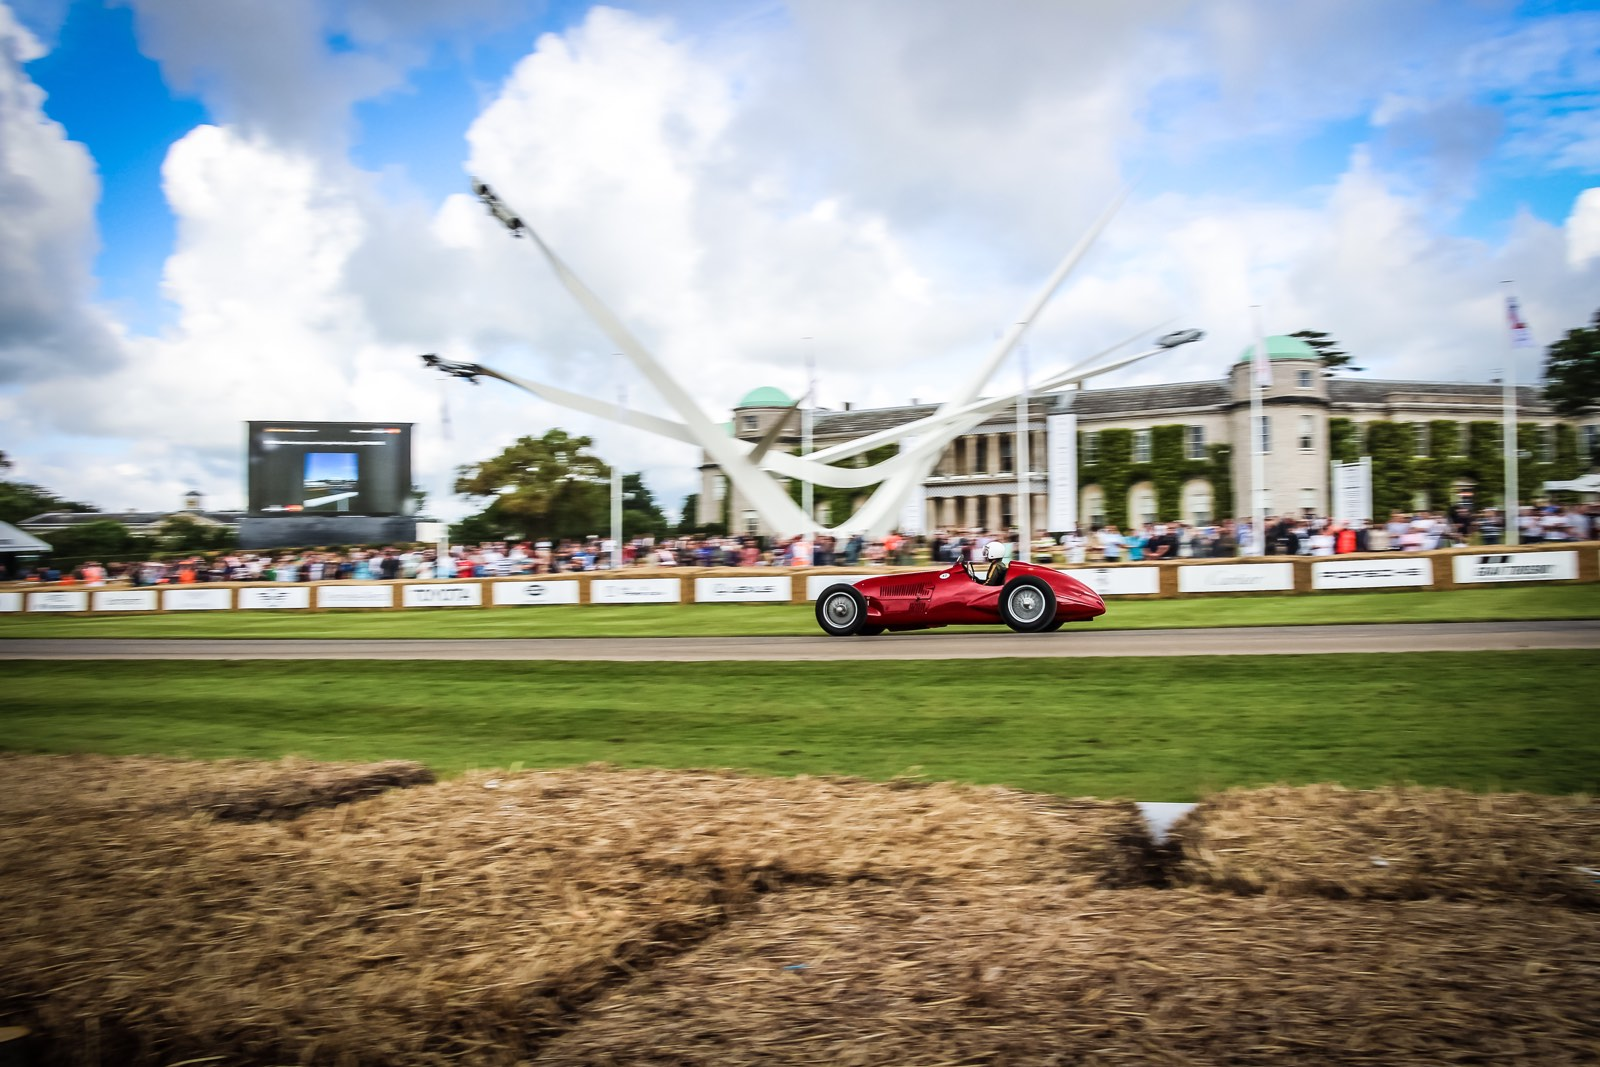 Vintage Maserati at the Goodwood Festival of Speed 2016